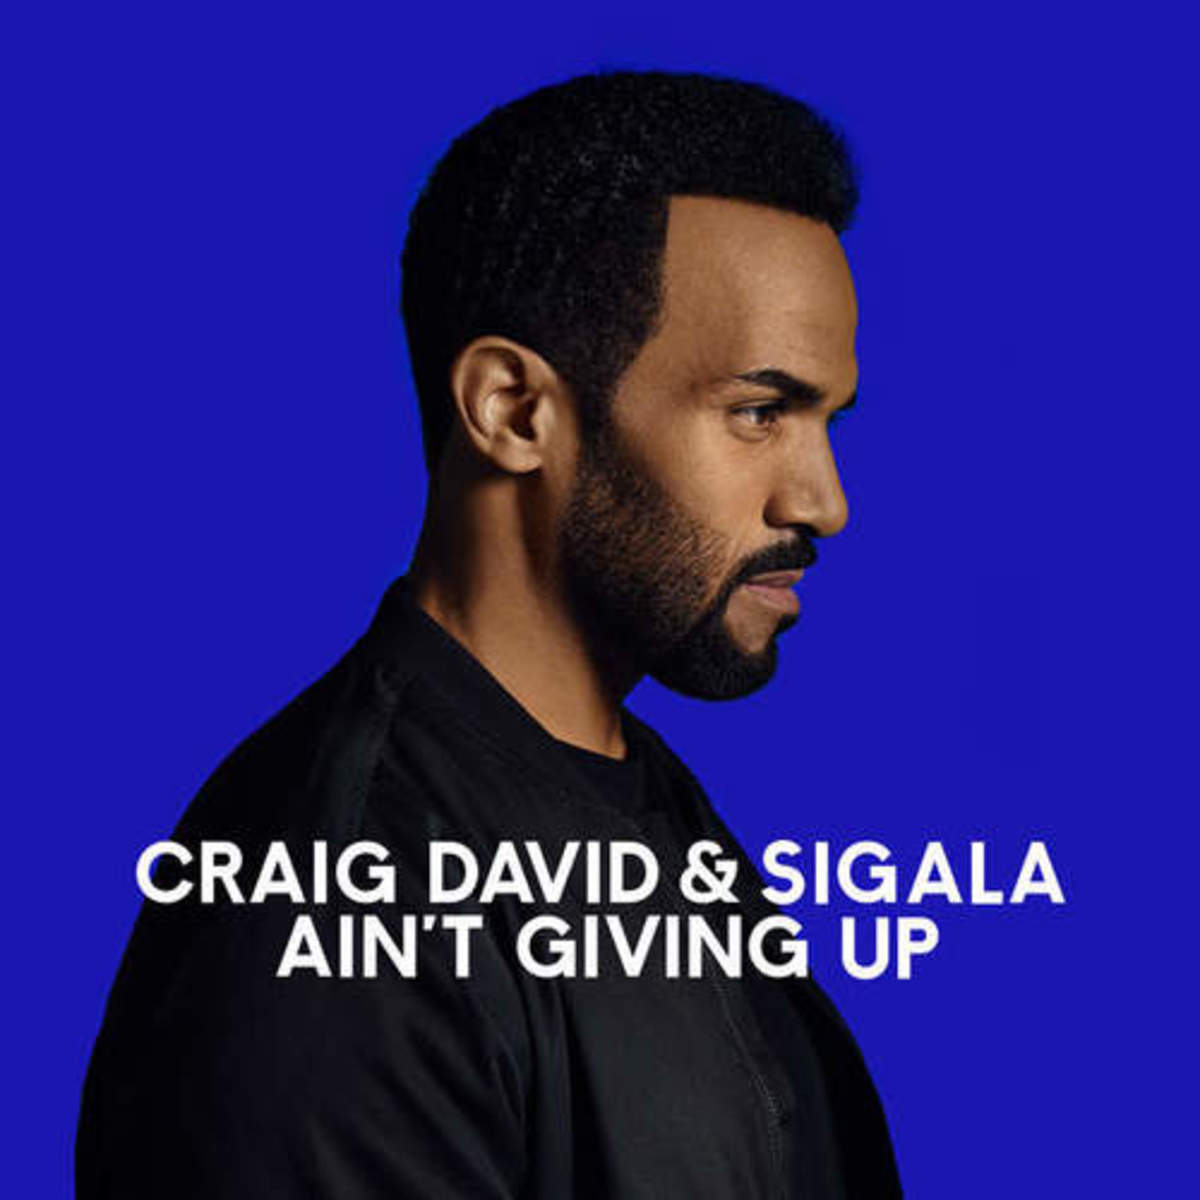 craig-david-aint-giving-up.jpeg